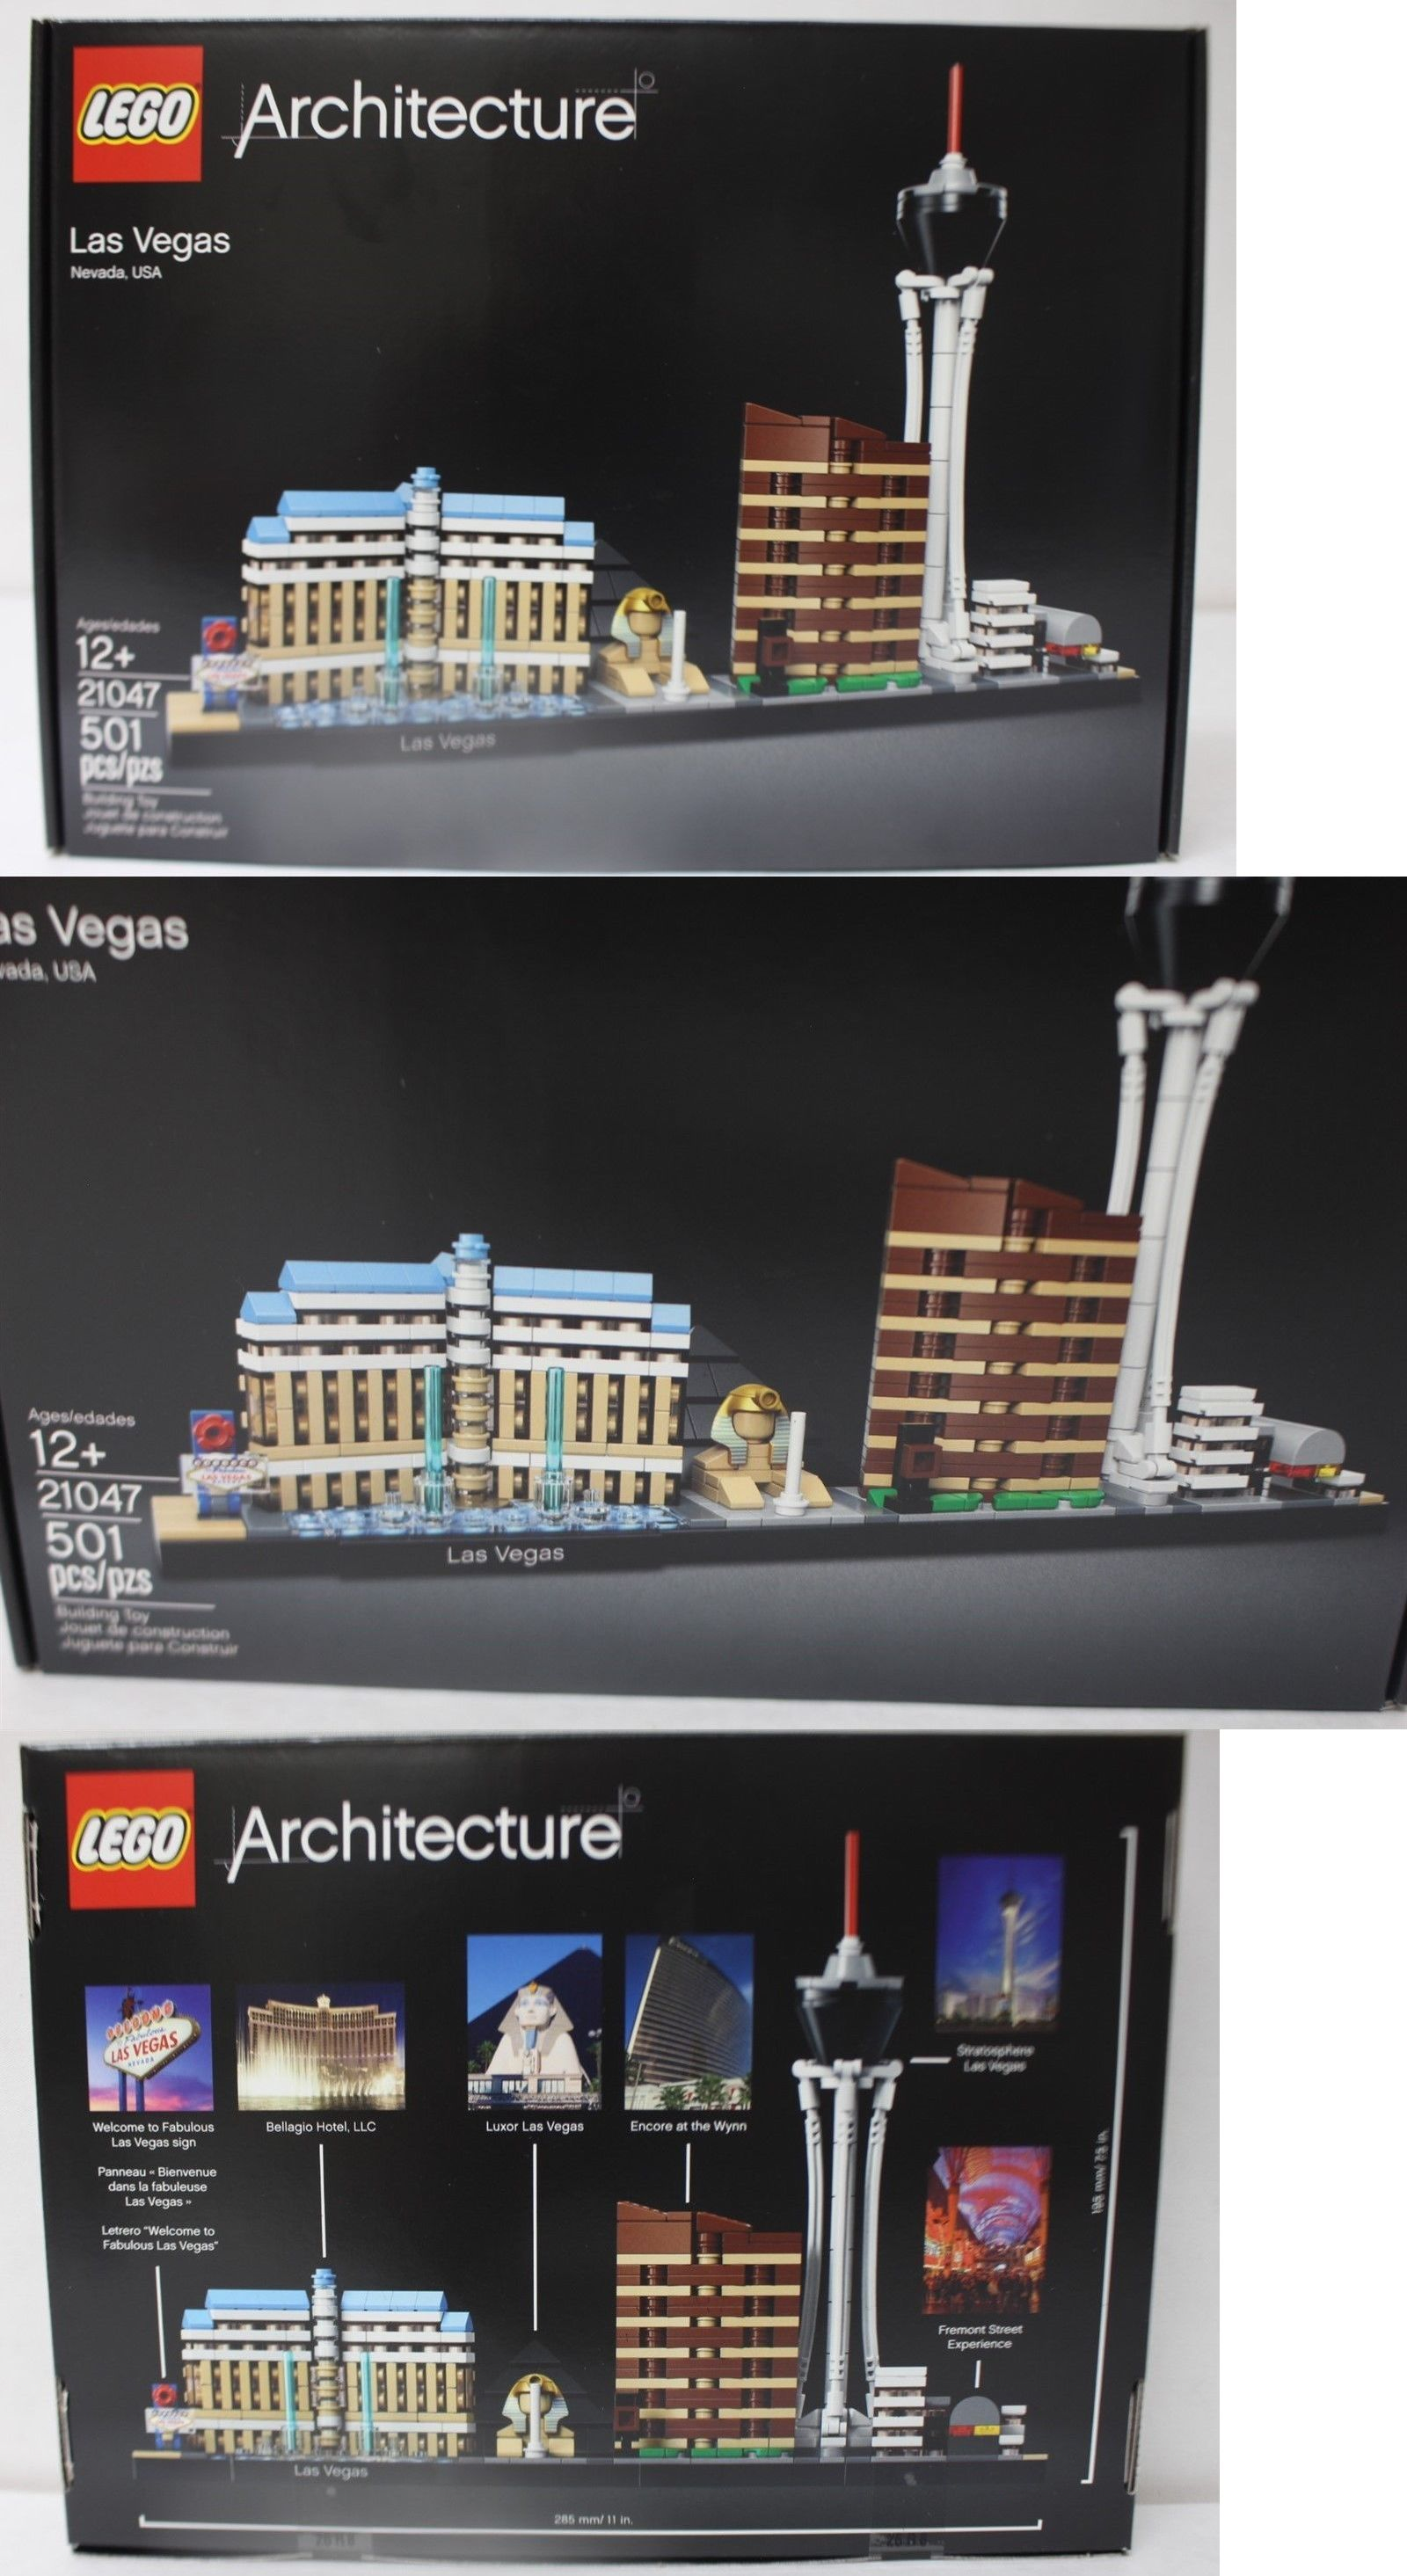 Lego 21047 Architecture Las Vegas 501pcs New In Hand Free Shipping Lego Lego Building Building Toys